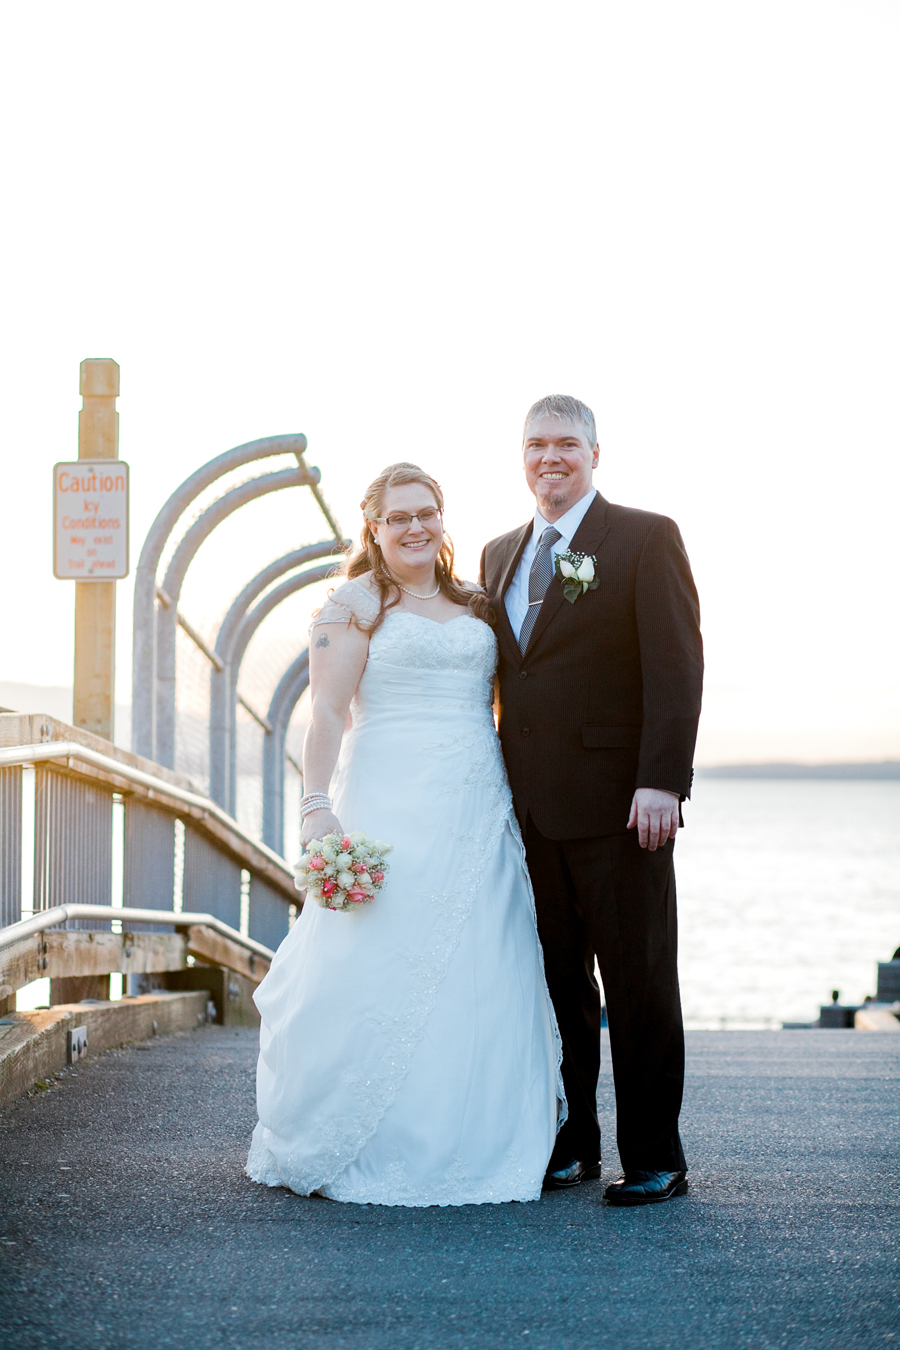 042-bellingham-wedding-photographer-chrysalis-inn-and-spa-elopement-katheryn-moran-photography.jpg